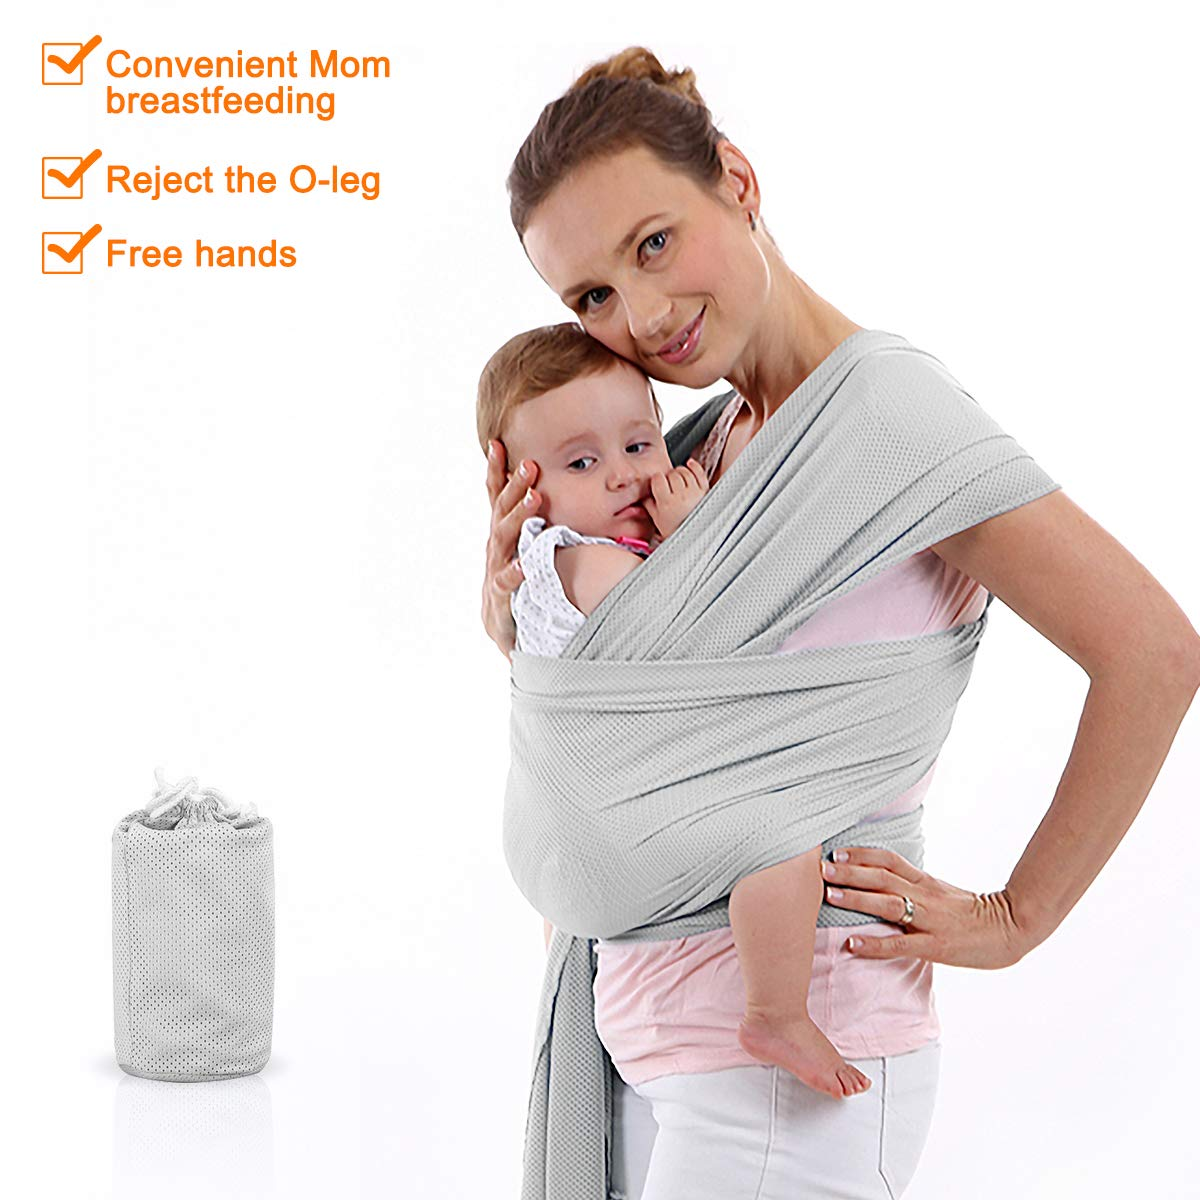 Fruiteam Baby Sling Cool And Breathable Baby Wrap For Summer Perfect Baby Carrier Wrap For Parent To Nurse Newborn One Size Fit All Exllent Infant